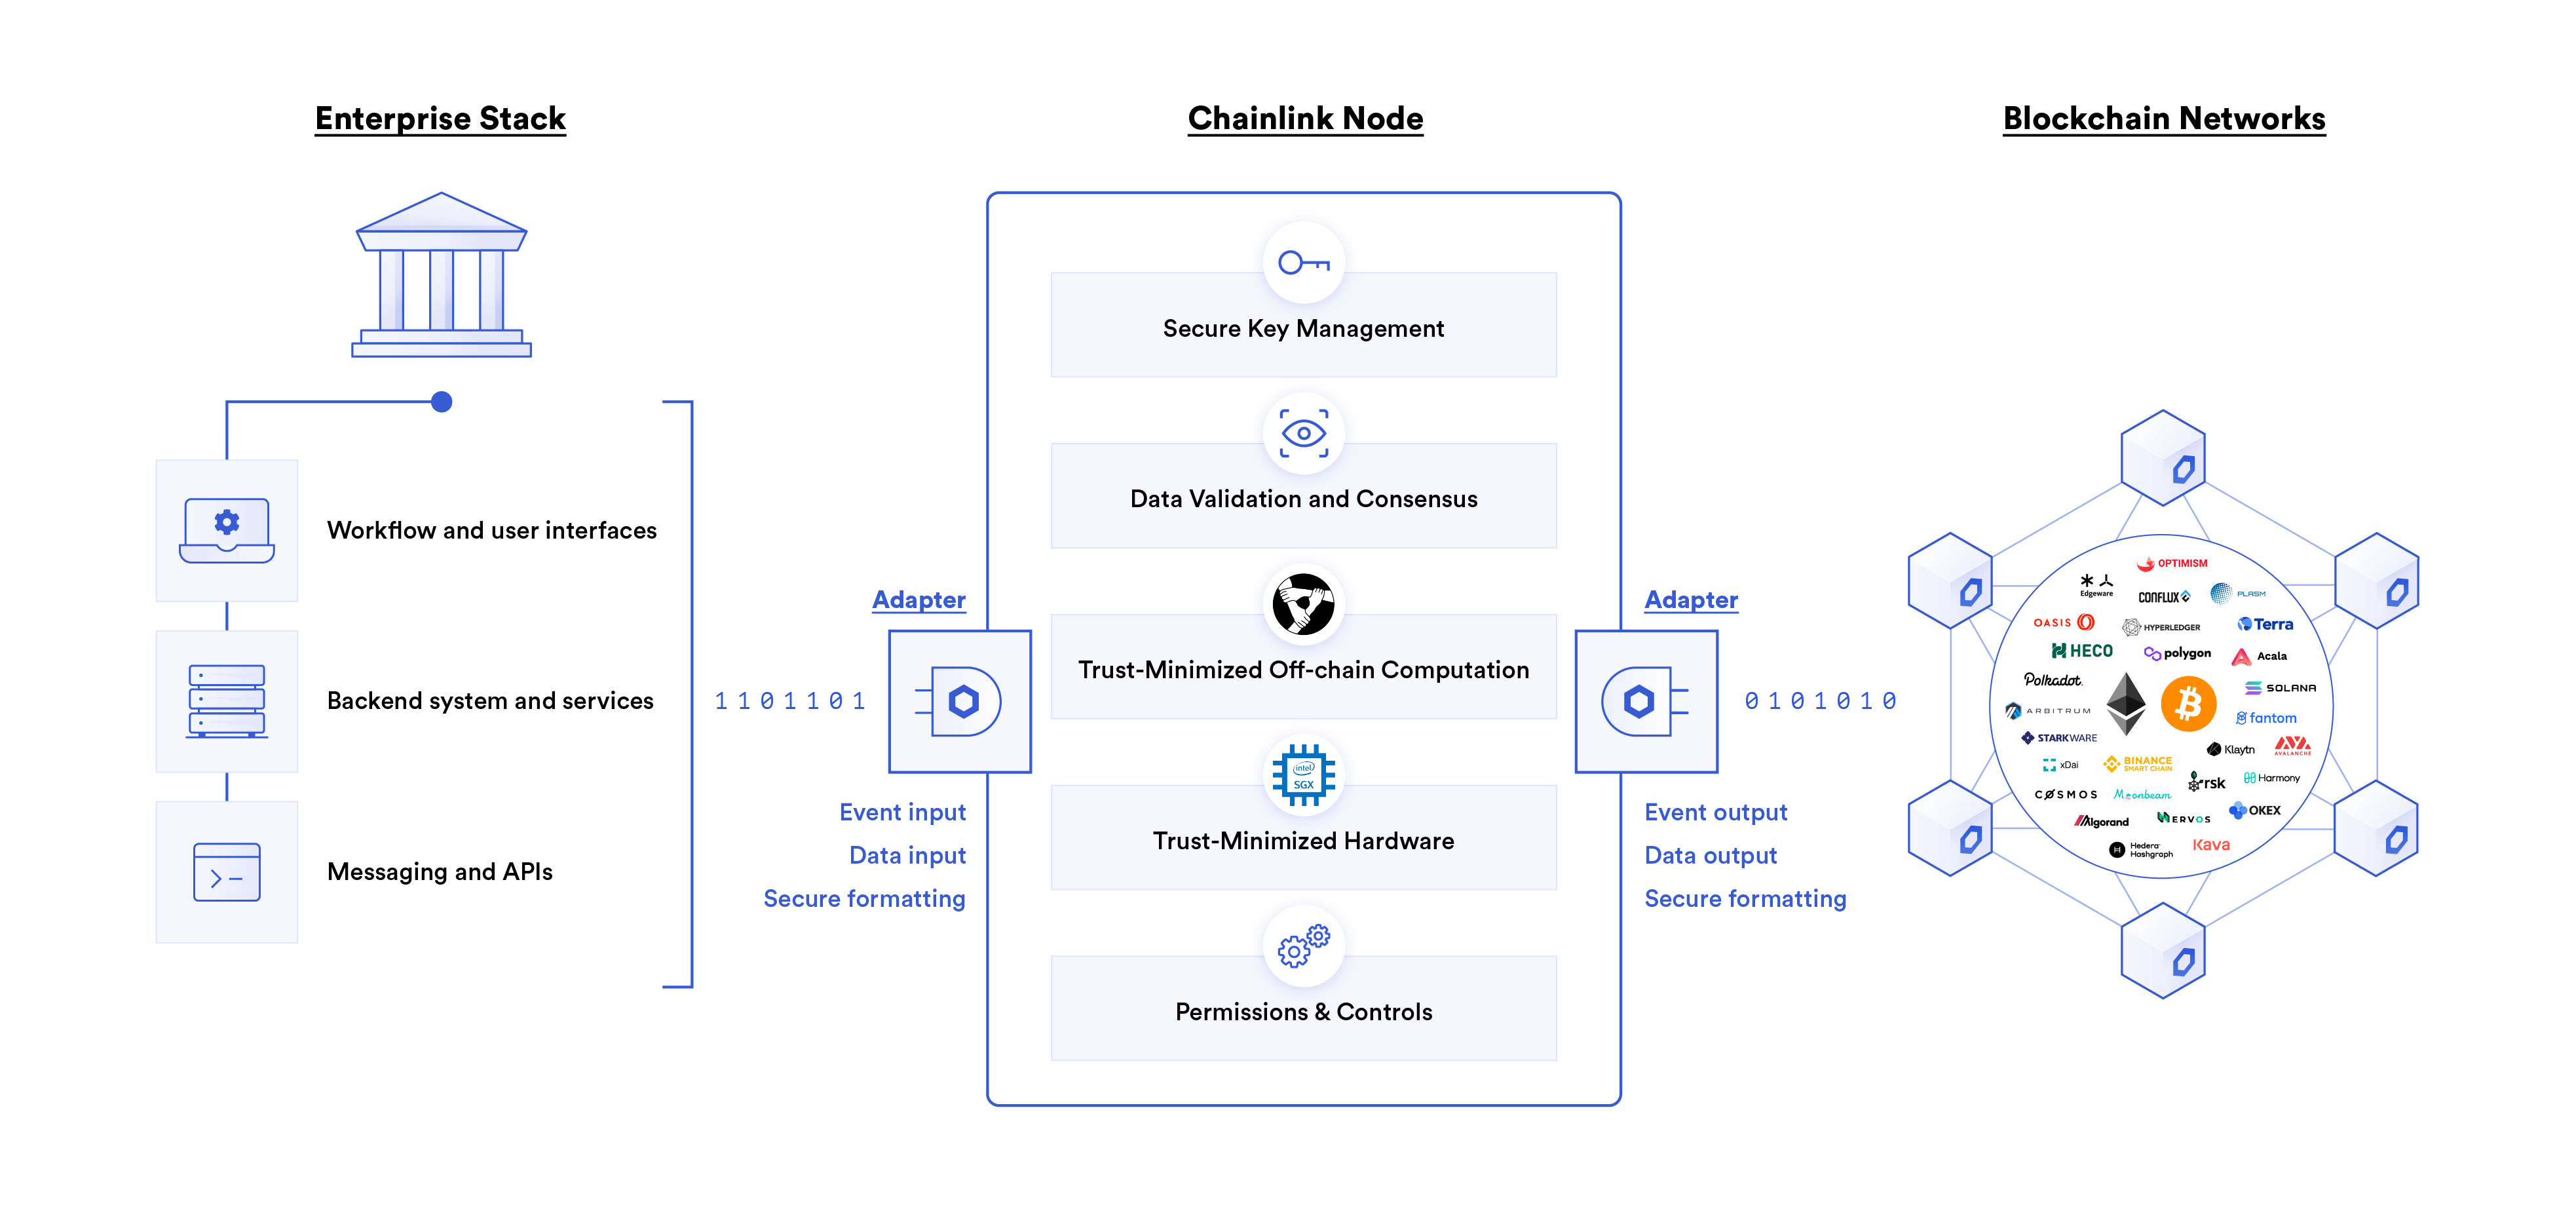 Chainlink empowers enterprises to participate in rapidly expanding on-chain markets by providing a secure middleware that seamlessly connects existing backend infrastructure to smart contracts on any blockchain.